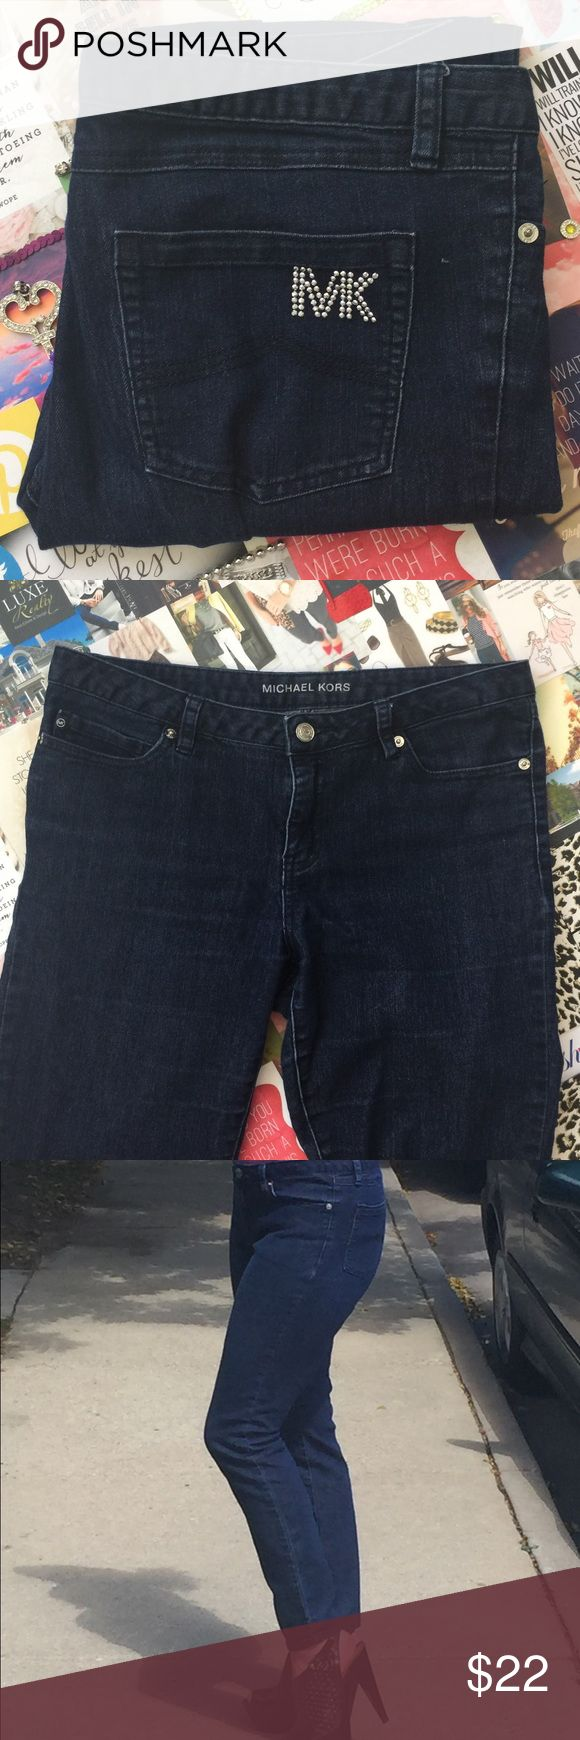 Michael Kors Stretch Dark Wash Denim Jeans! 👖👢👚 Soft, stretchy Michael Kors jeans that hug your curves without sacrificing comfort! Stylish dark denim is easy to dress up with heels and wear casual with a tee too! Glam, sparkly MK emblem on back pocket. They are a true size 8, and if you're between sizes I'd say these are best for 8-10, not 6-8. In great condition, rarely worn, I'm just not much of a denim girl so I'm selling them. Michael Kors Pants Straight Leg